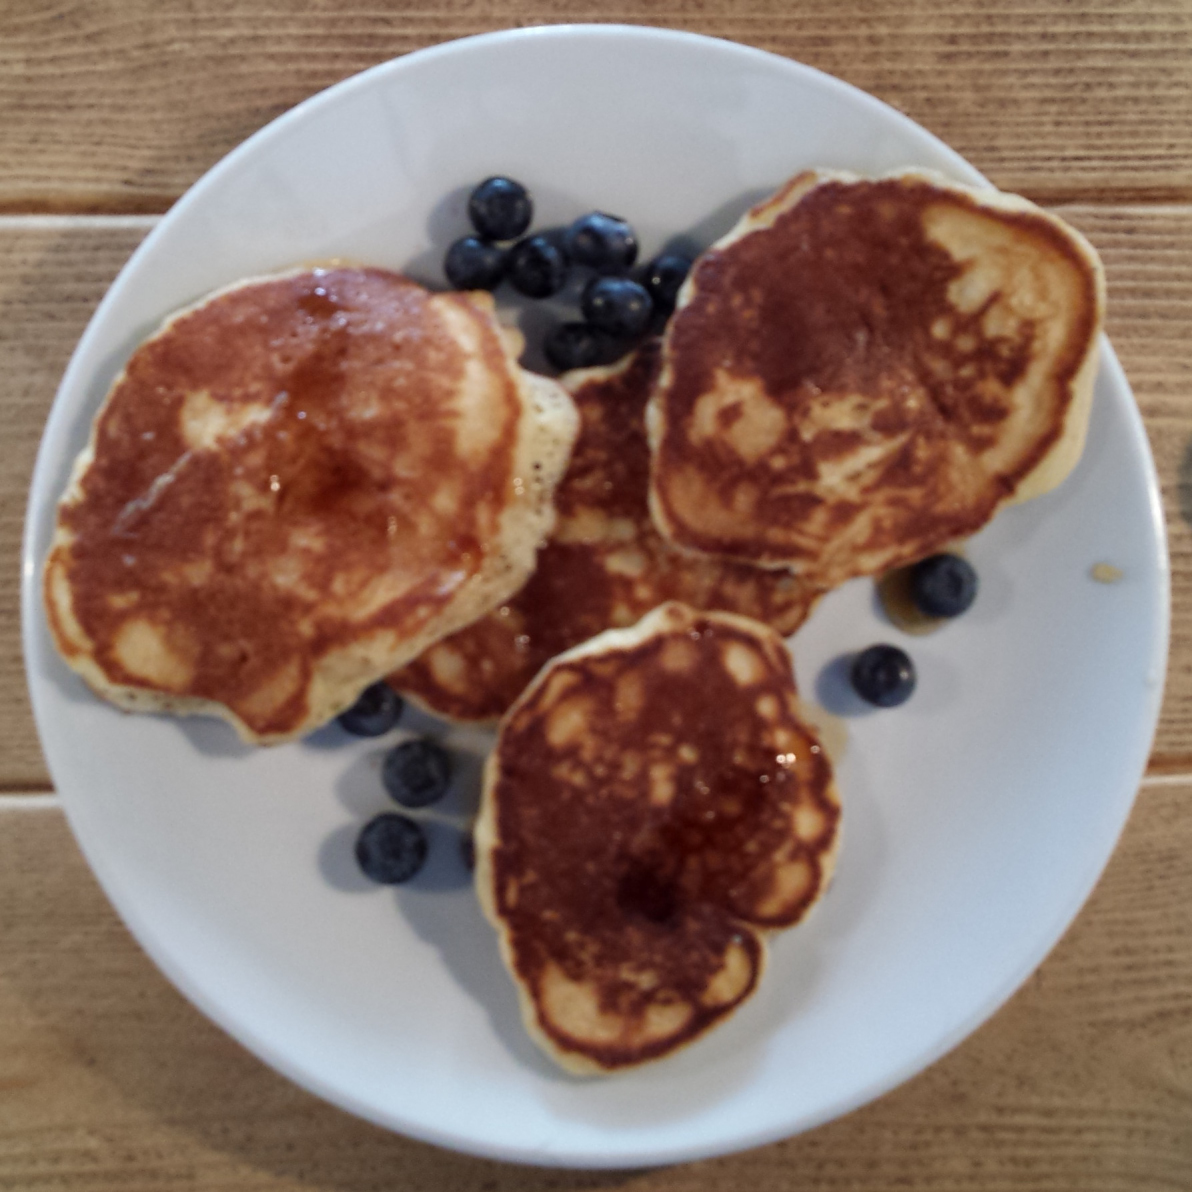 Four mini-American pancakes, in a clover-leaf arrangement, seen from above.